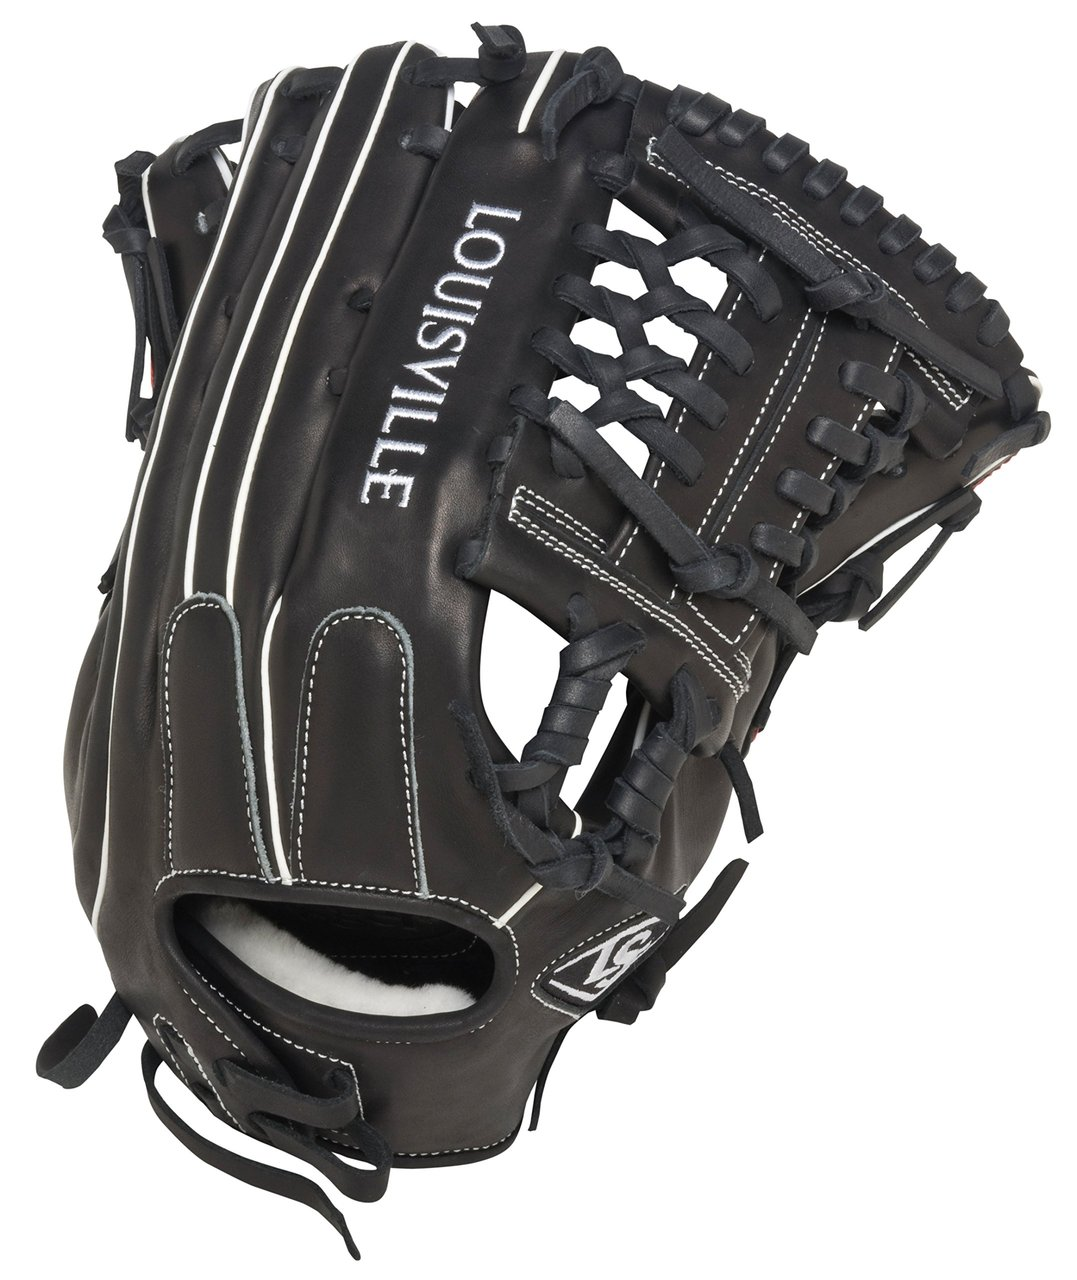 louisville-slugger-super-z-black-14-inch-slow-pitch-softball-glove-right-handed-throw FGSZBK5-1400-Right Handed Throw Louisville Slugger 044277051914 Louisville Slugger Super Z Black 14 inch Slow Pitch Softball Glove